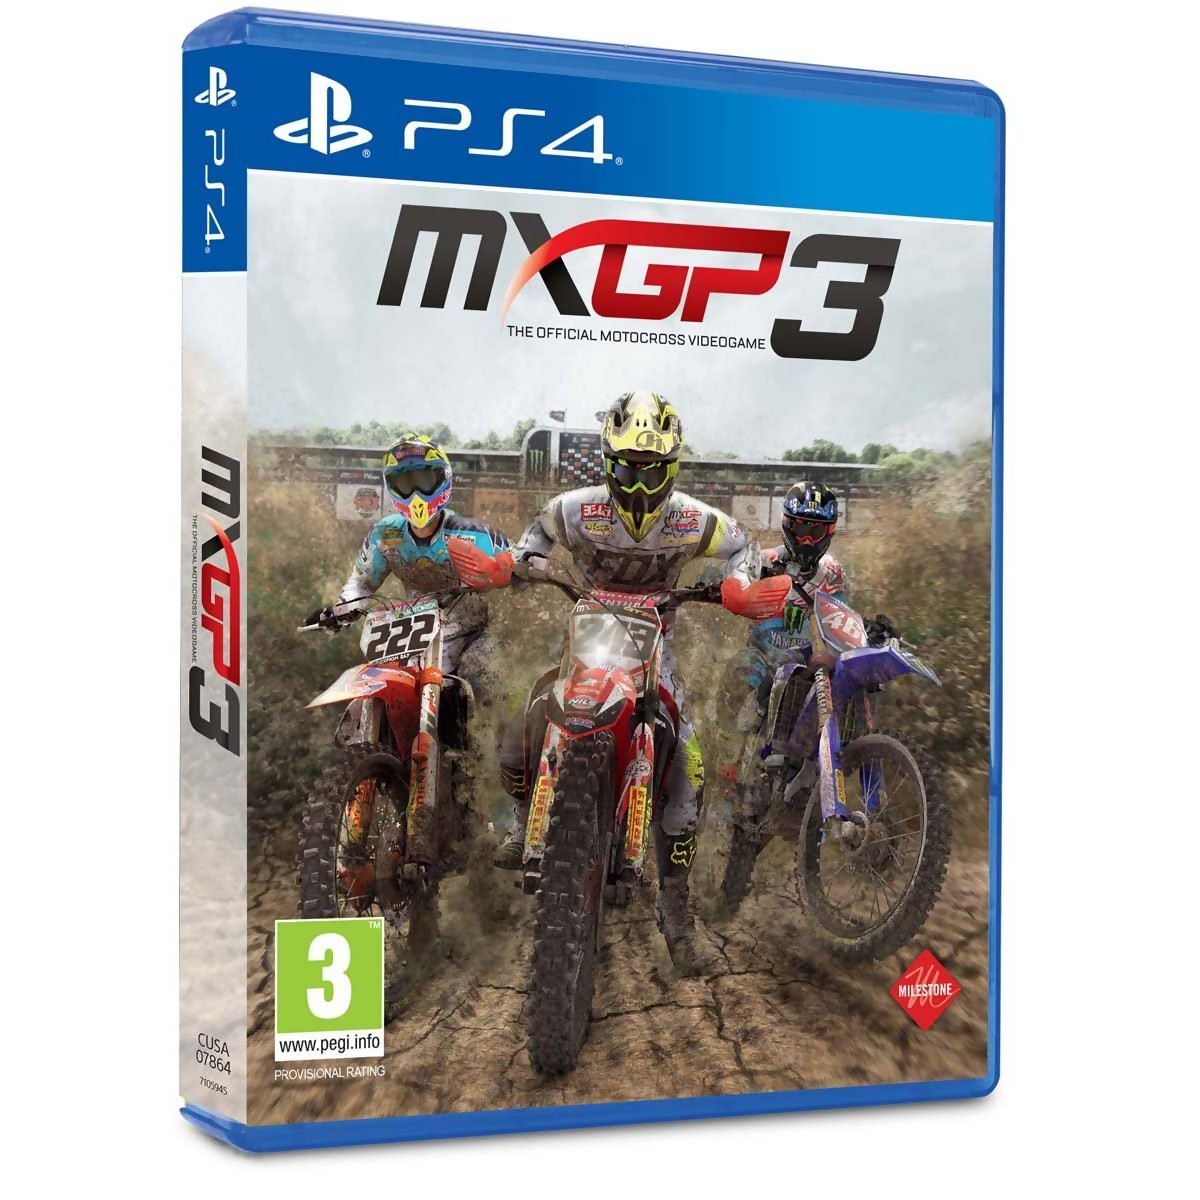 mxgp 3 trailer de gameplay sur ps4 et xbox one. Black Bedroom Furniture Sets. Home Design Ideas